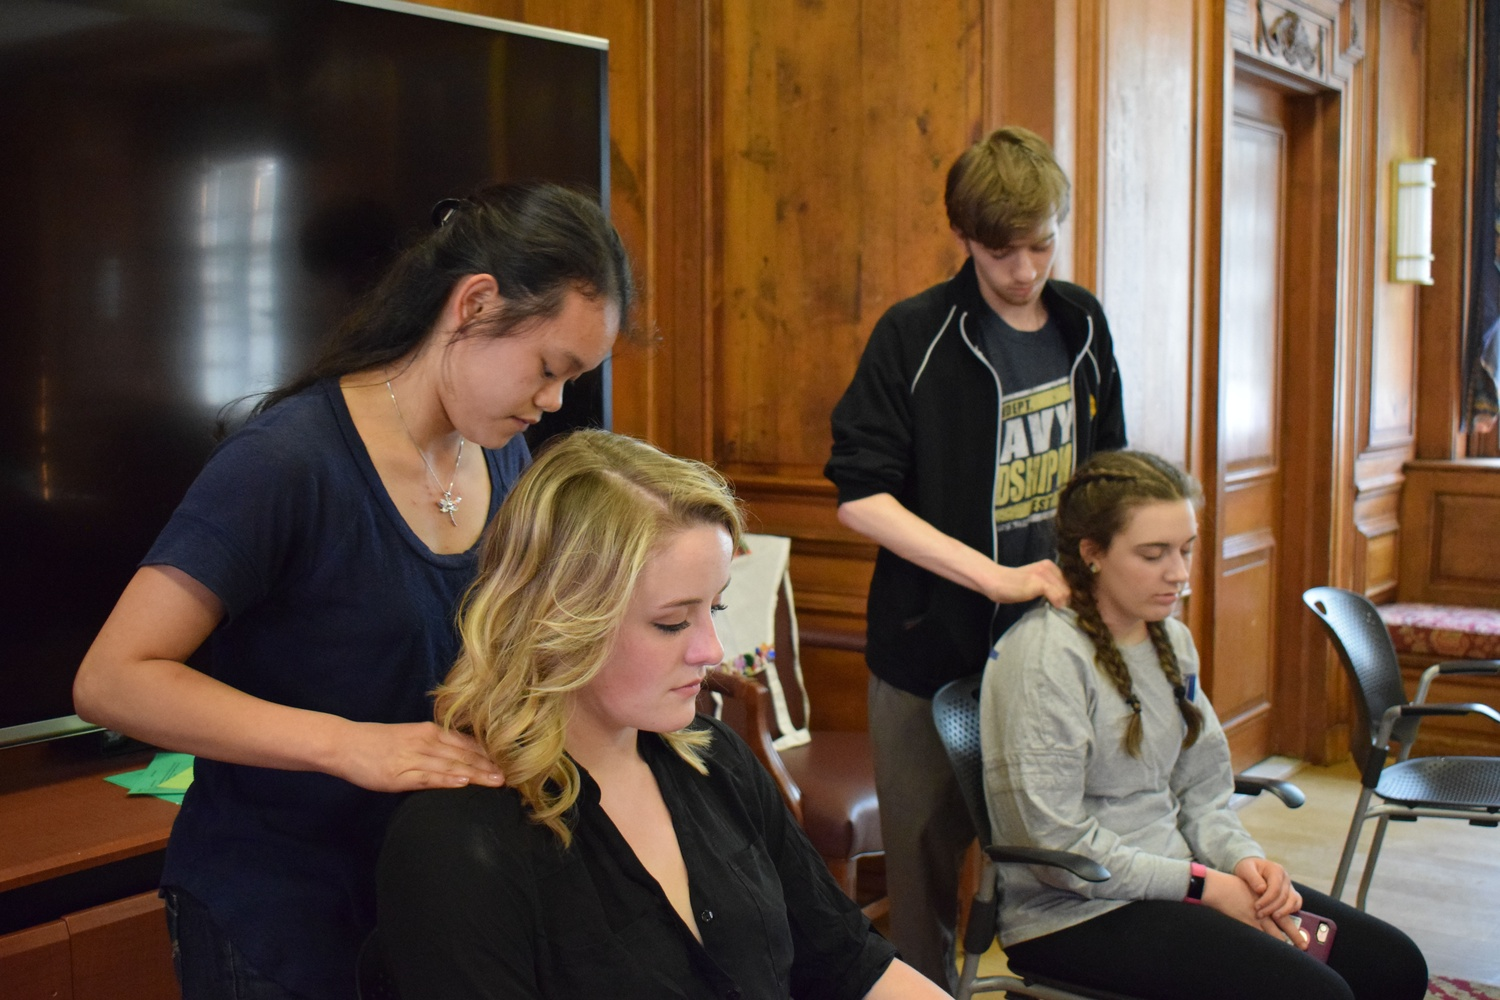 Students enjoy free massages in the Straus Common Room as a part of the Undergraduate Council 'We Care Week.'